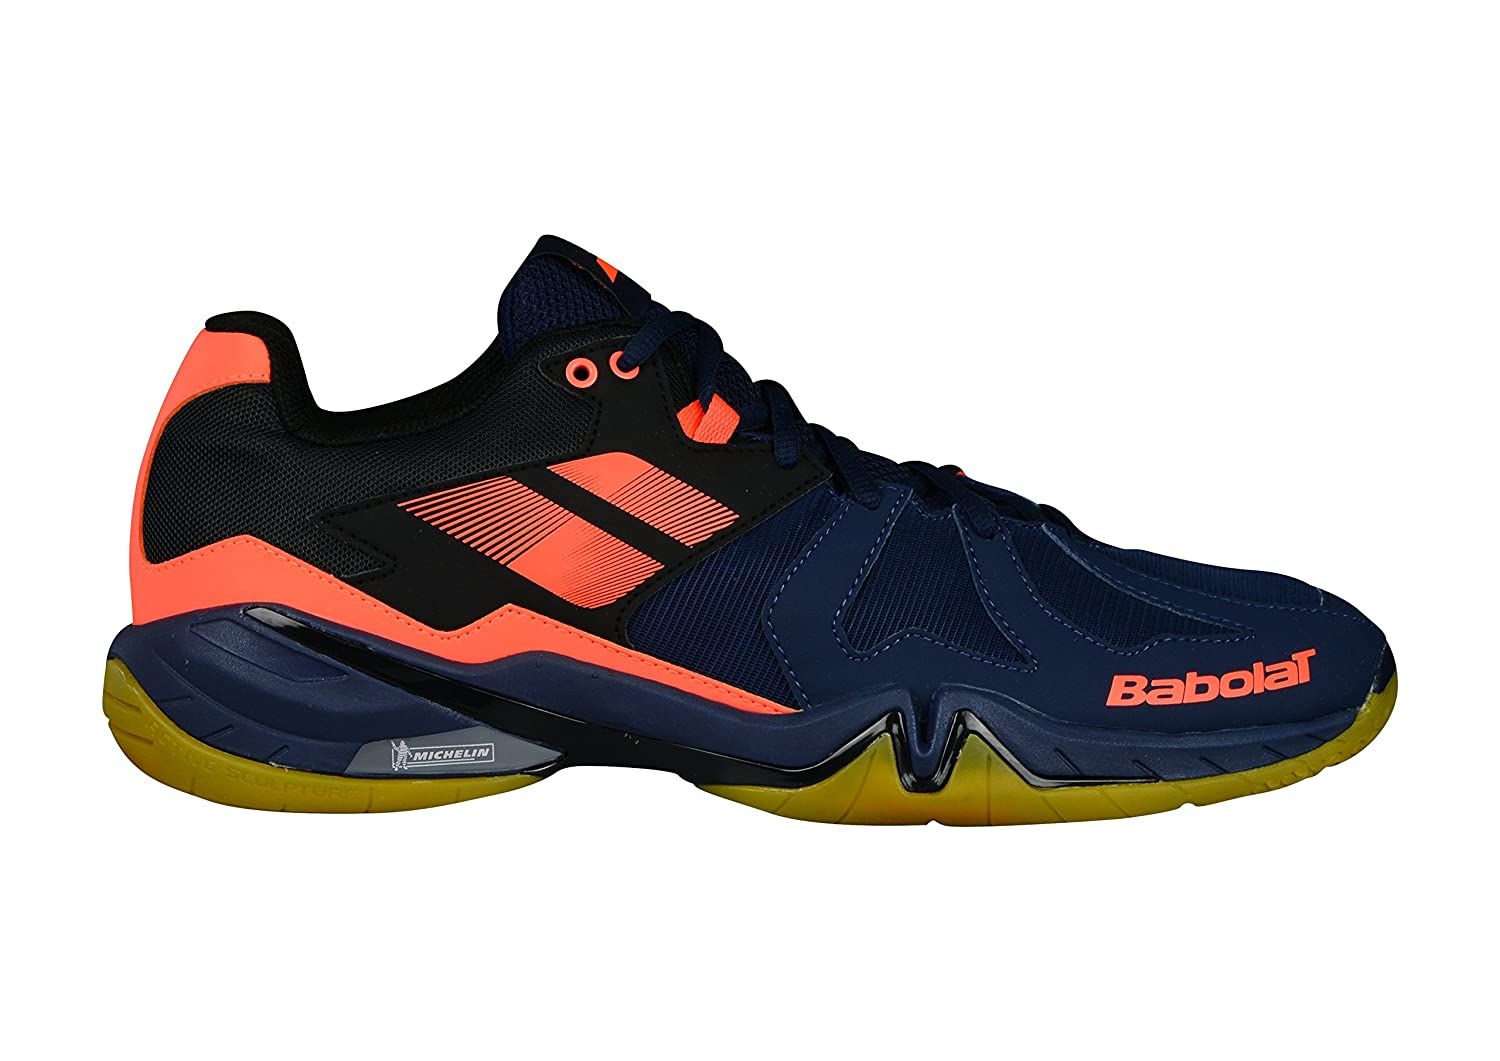 Babolat 2018 Shadow Spirit Men's Shoe, Badminton/Racquetball/Squash/Indoor Tennis - Navy Blue/Fluo Orange B07BMWGKRQ 7.5 B(M) US